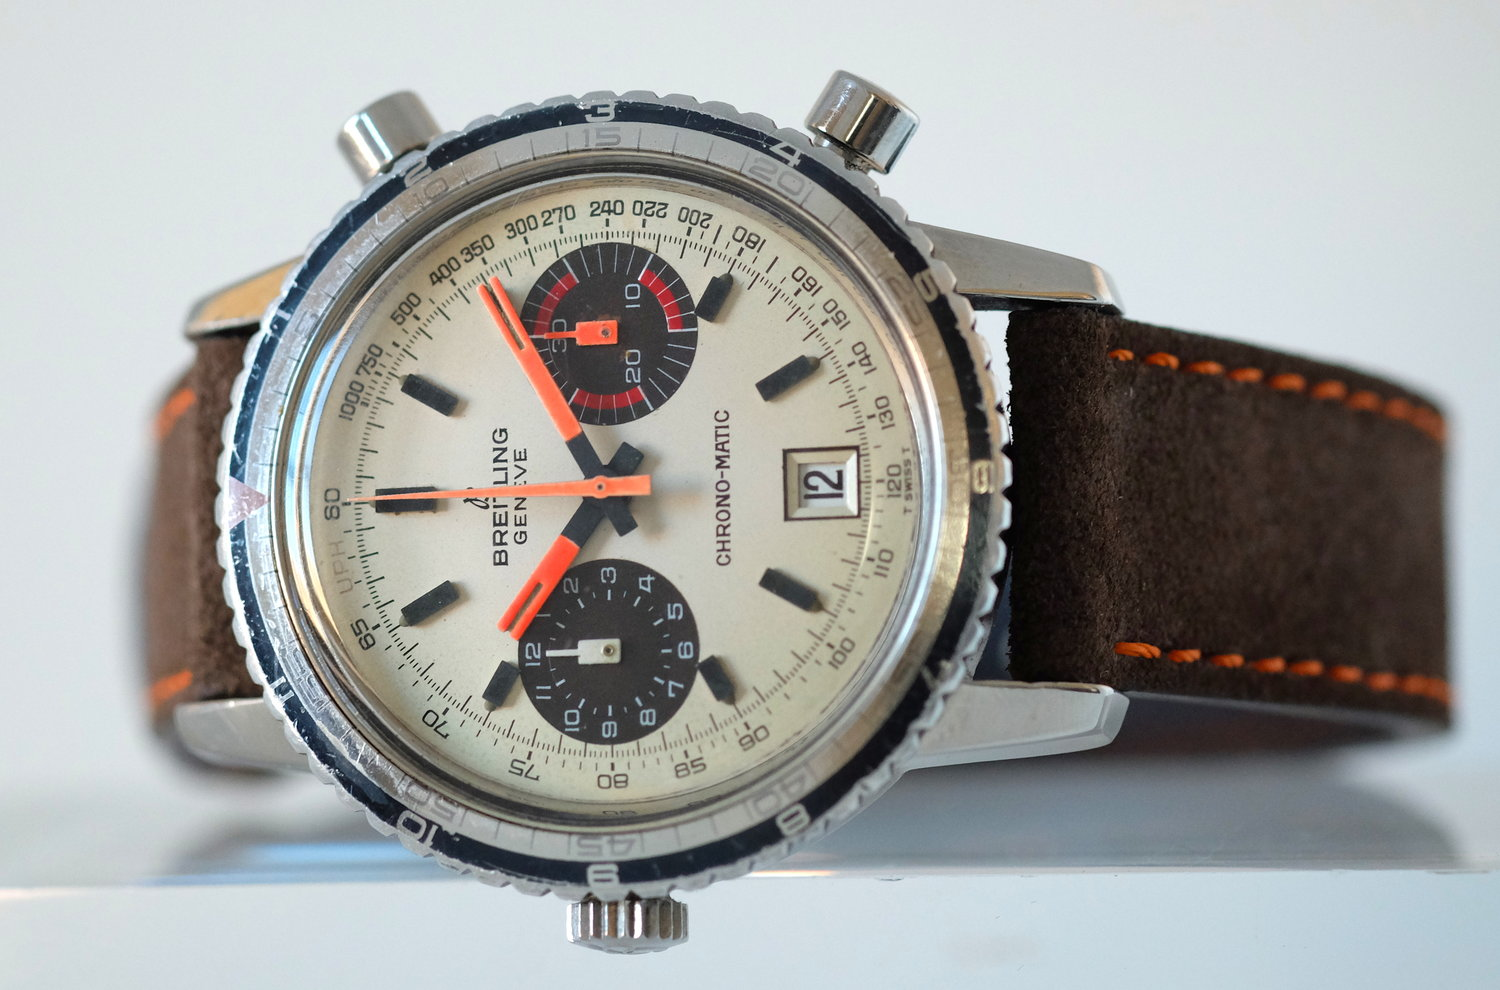 Breitling Chrono-matic ref. 2110   SOLD